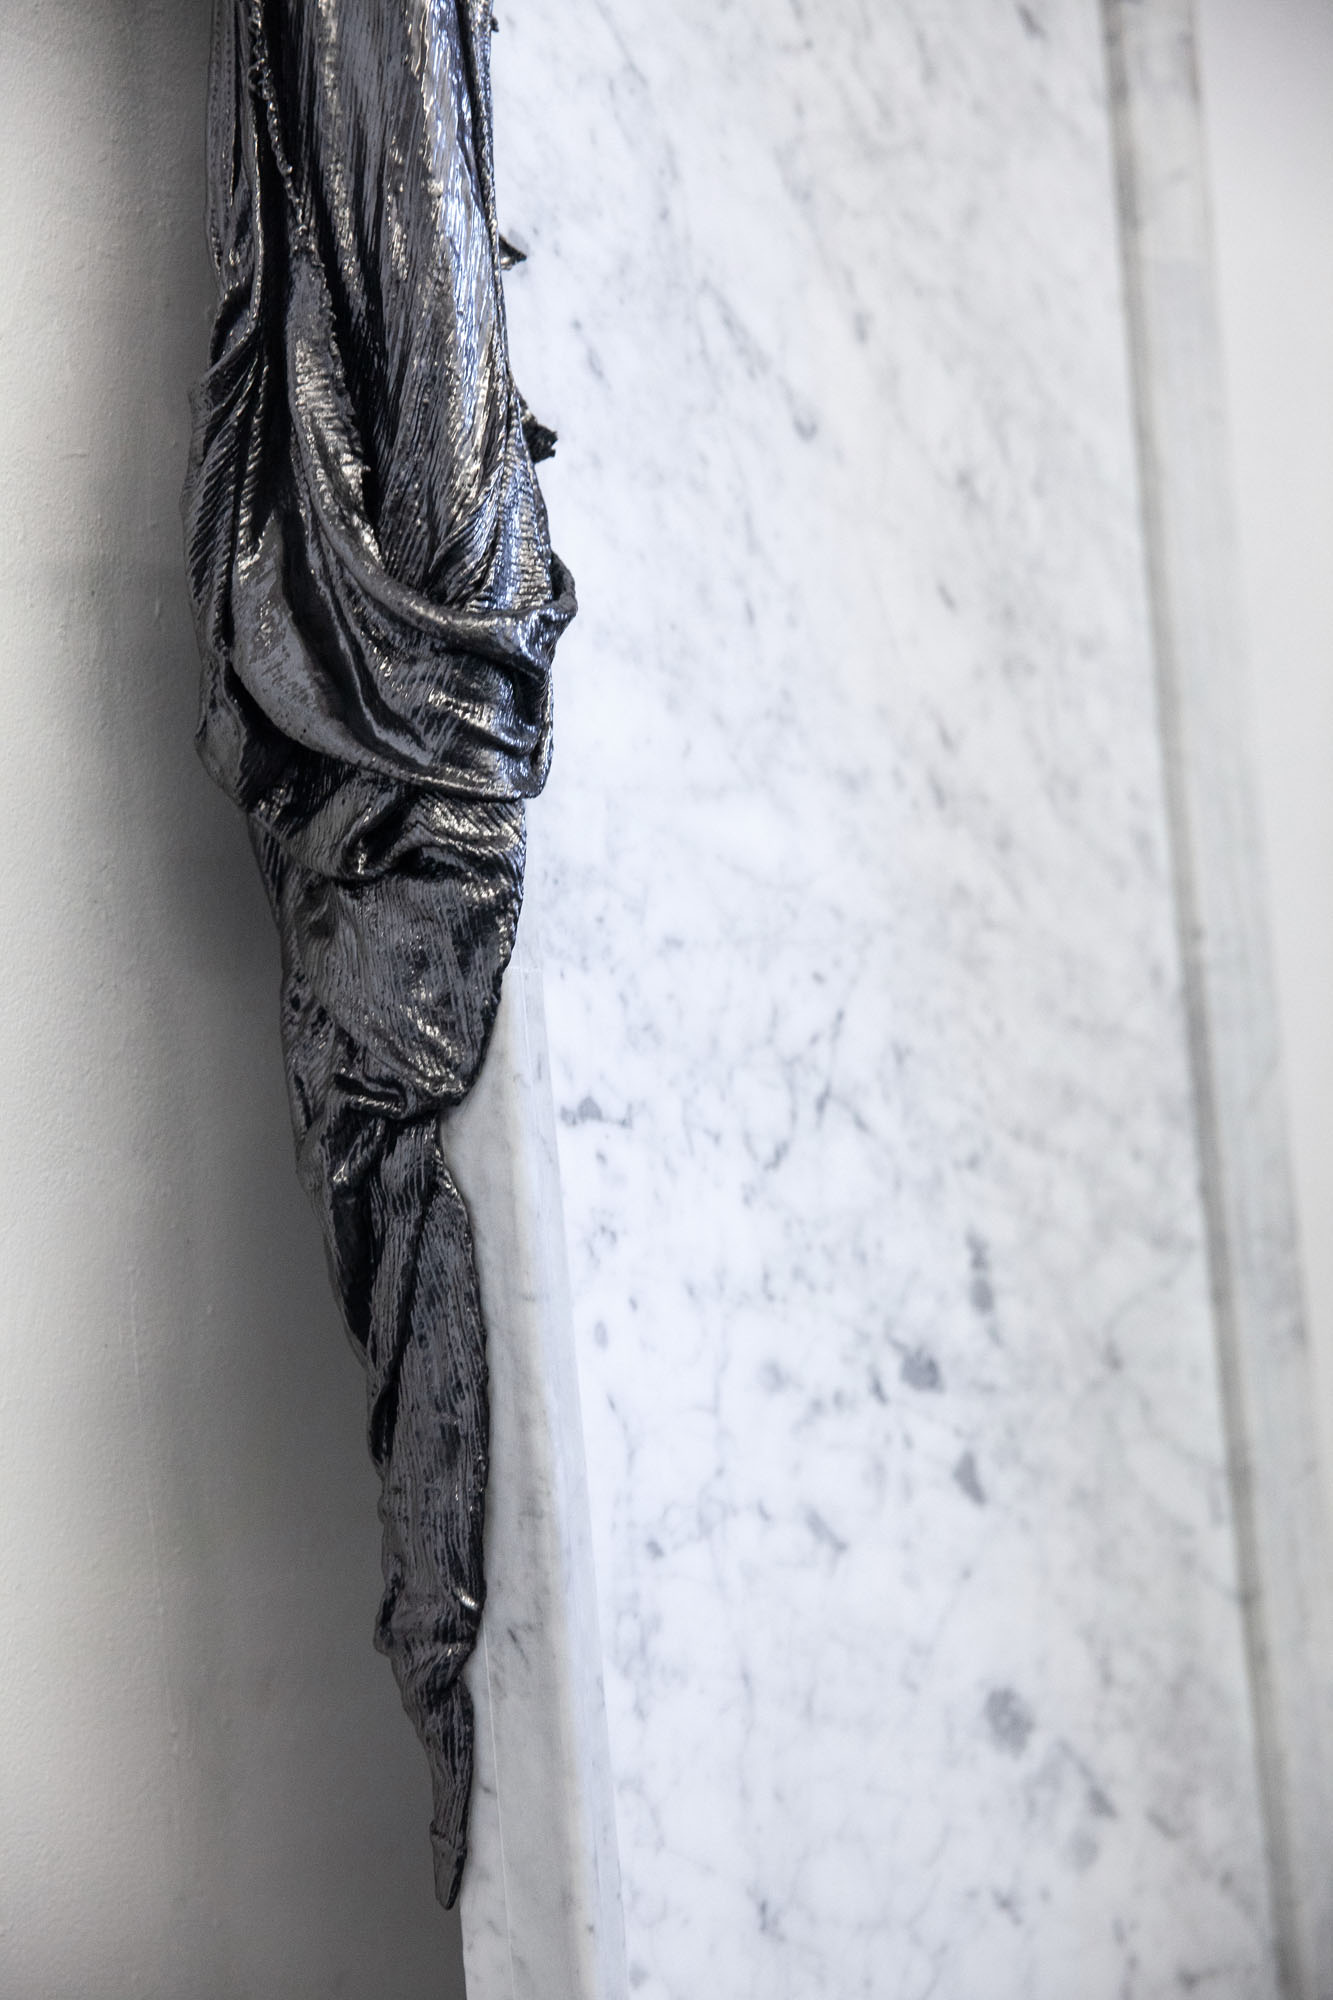 Lauren Seiden  Mirroring The Unseen  (detail), 2019 Marble, graphite pencil, cotton, and mixed mediums 72 x 24 x 4 inches (182.88 x 60.96 x 10.16 cm)